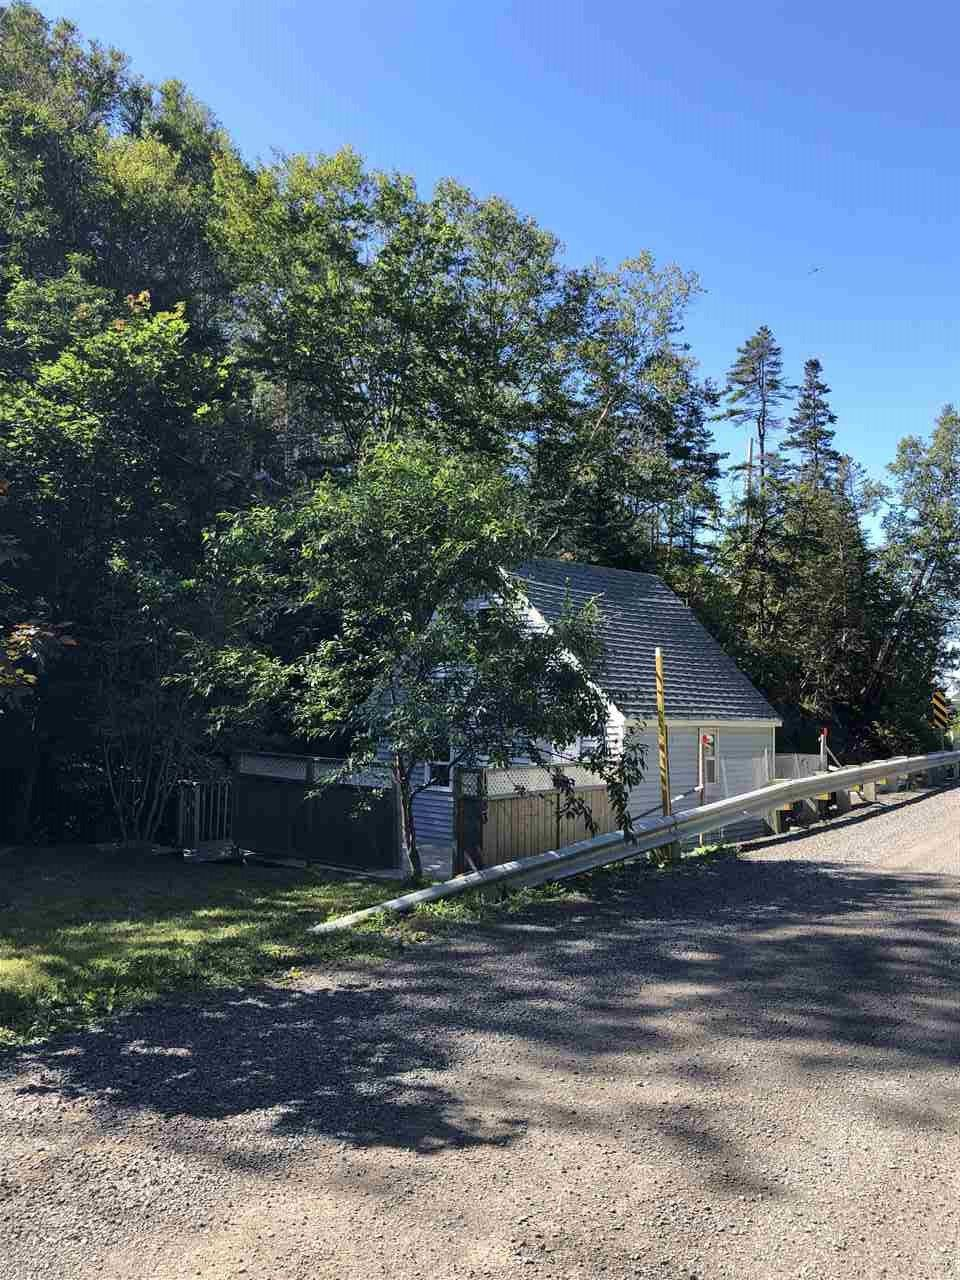 Main Photo: 1483 Hamilton Road in Harbourville: 404-Kings County Residential for sale (Annapolis Valley)  : MLS®# 202017530